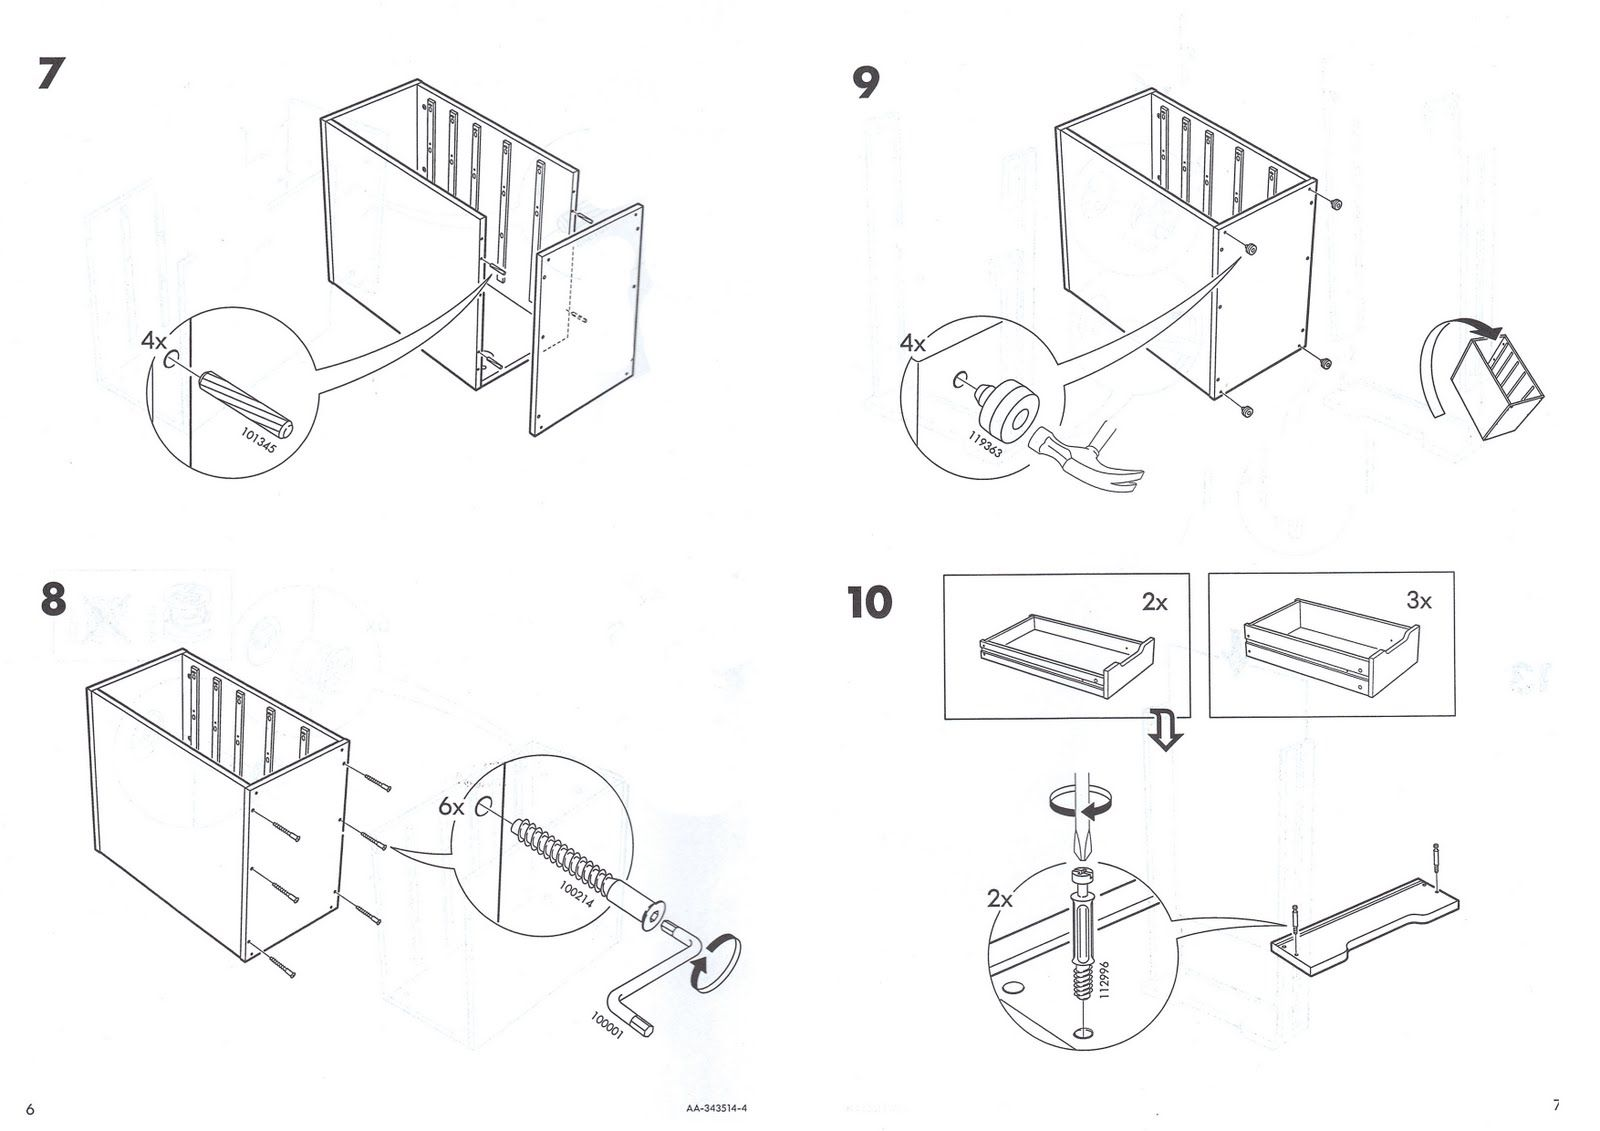 ikea hot plate instructions